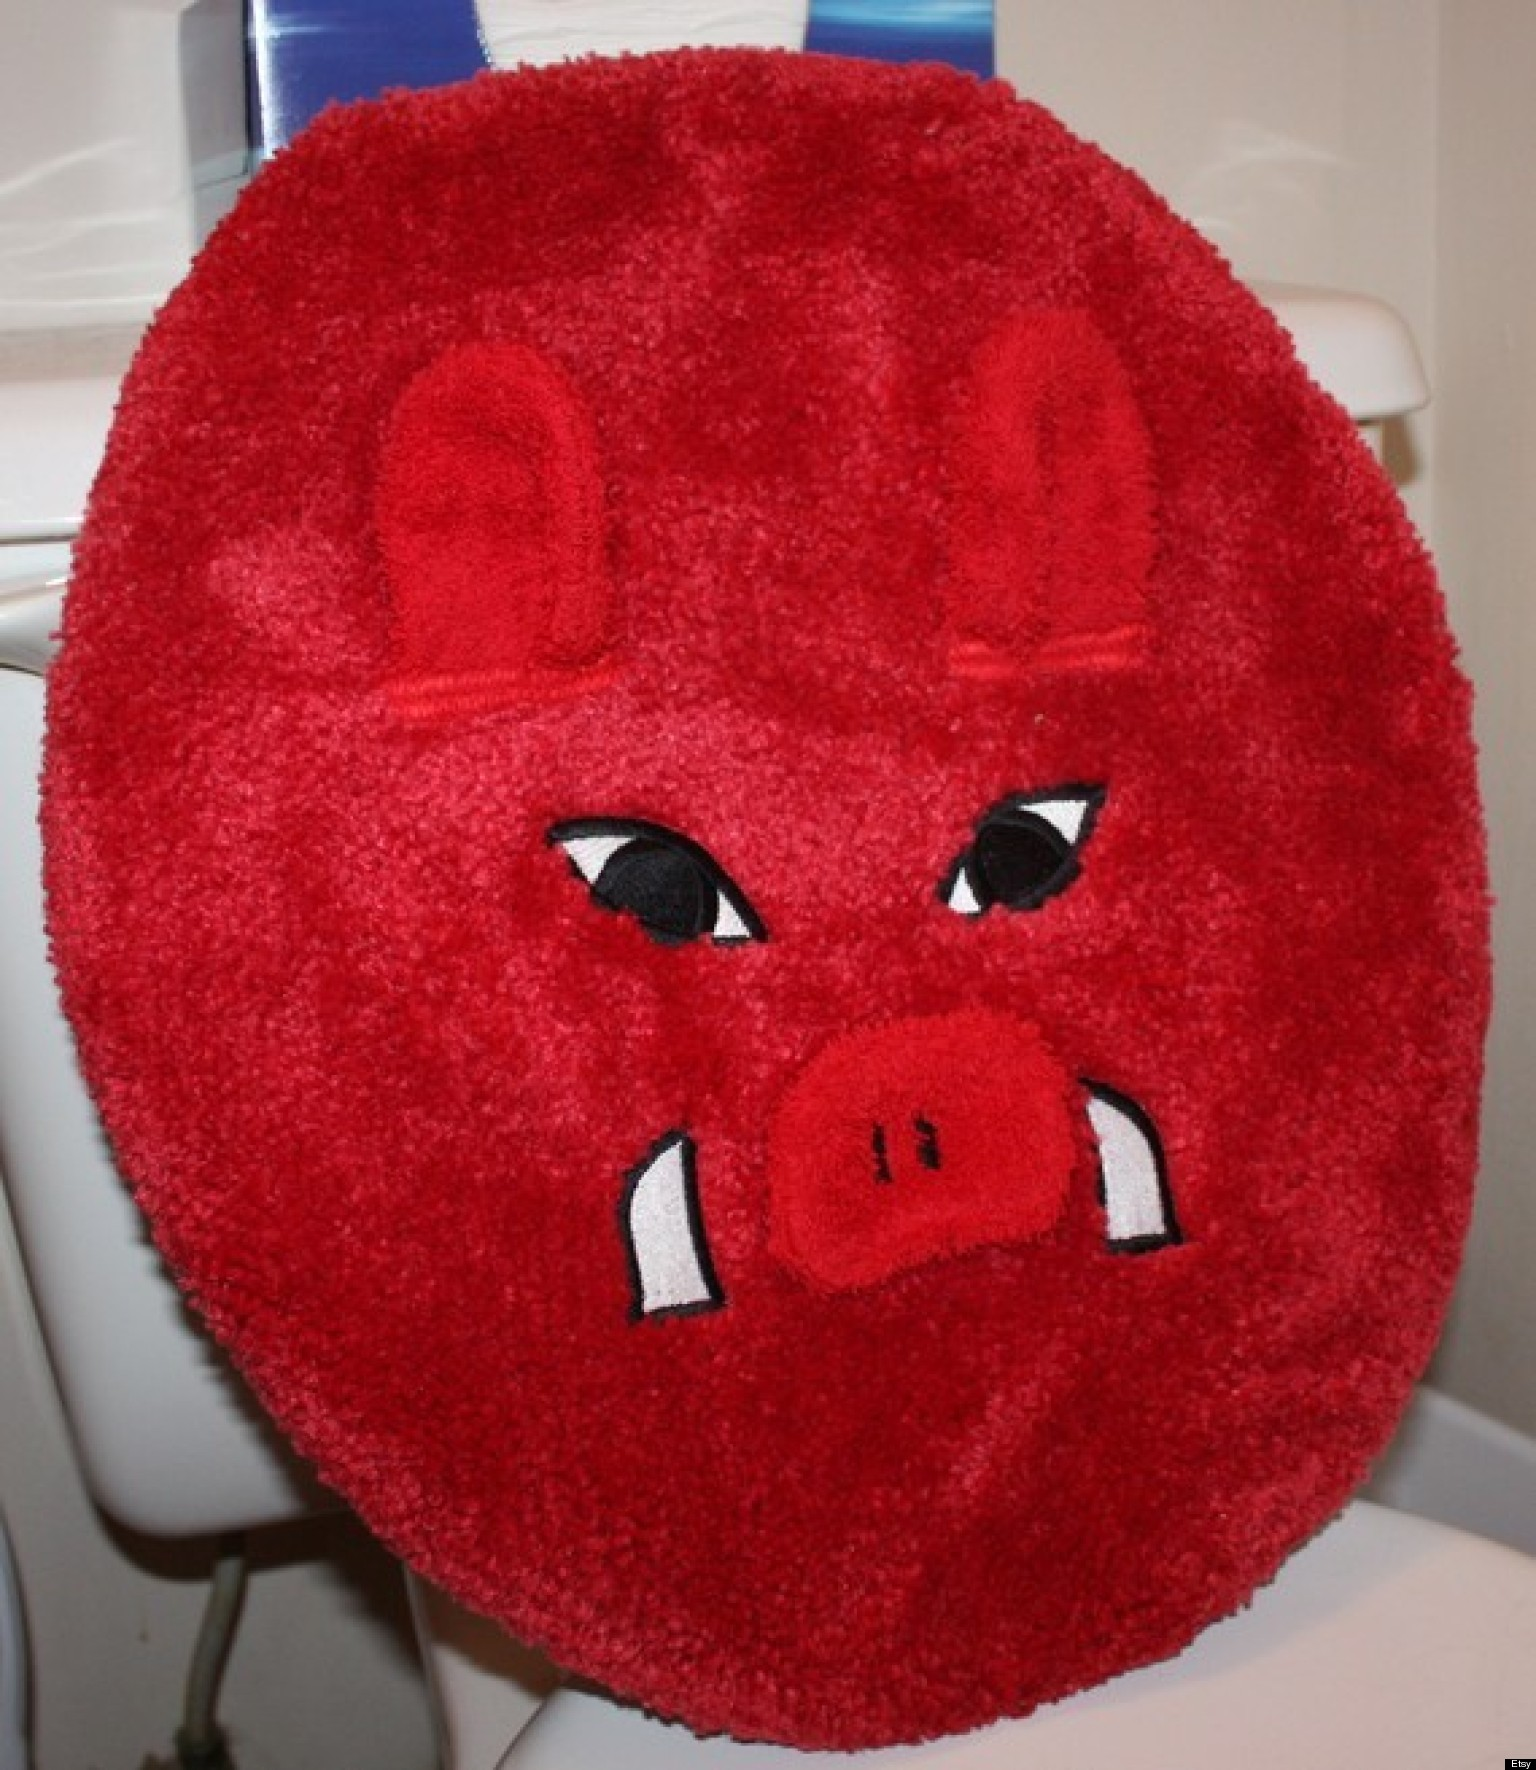 25 Ridiculous Toilet Seat Covers Photos Huffpost